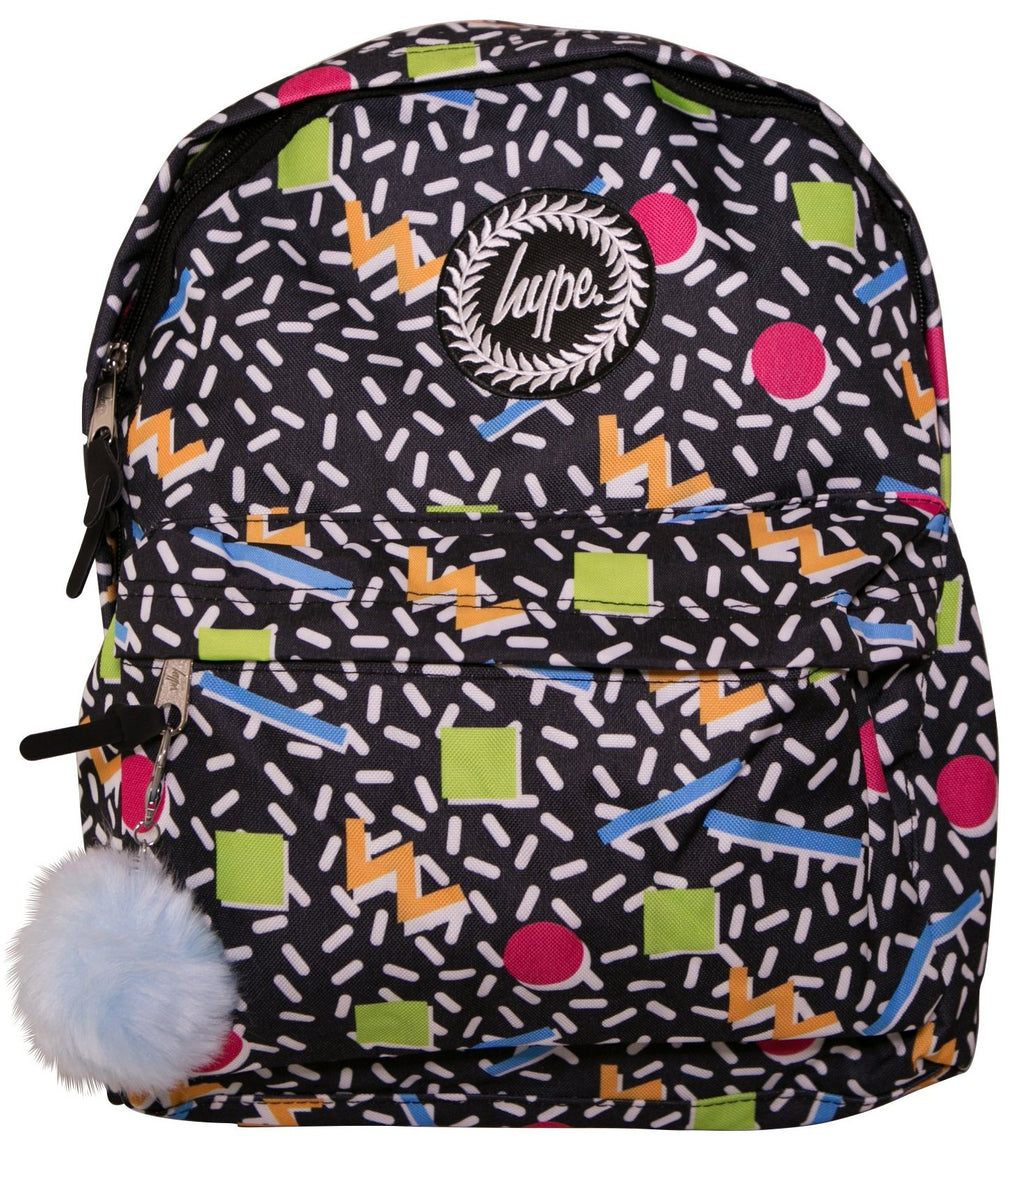 HYPE NINETIES GEO BACKPACK RUCKSACK BAG - MULTI